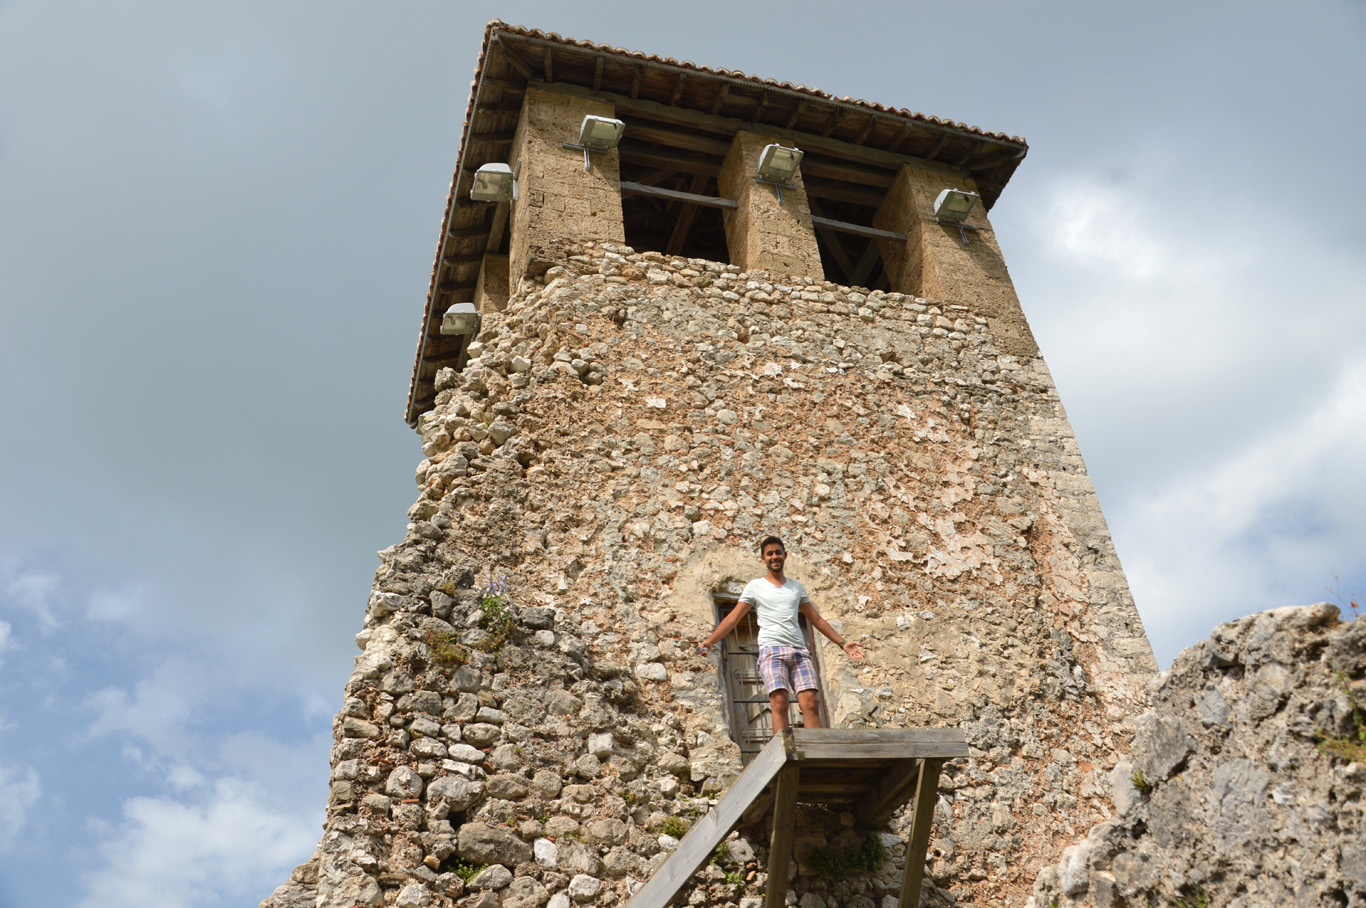 At the medieval tower